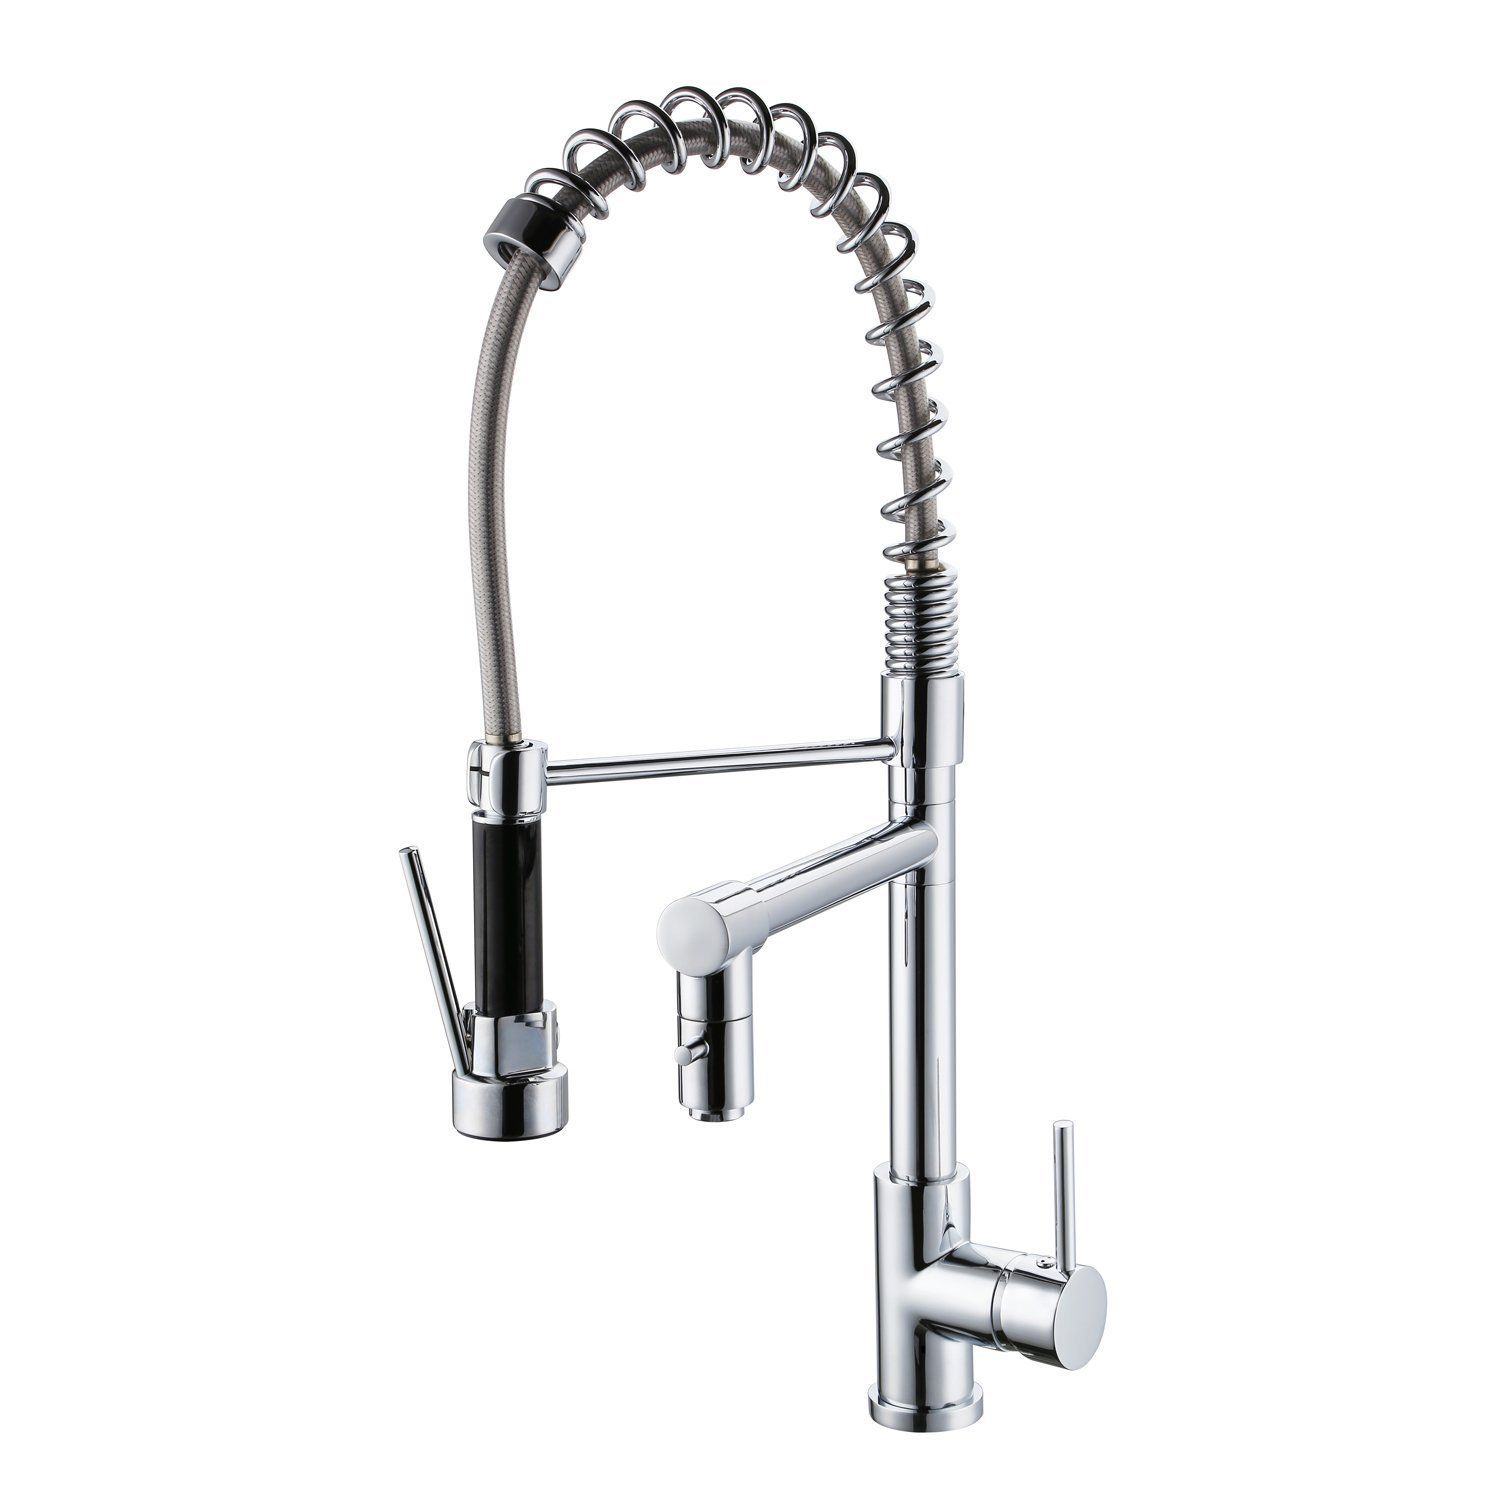 ULING K090 Hot And Cold Push On Spray Kitchen Sink Faucet Pull Down ...